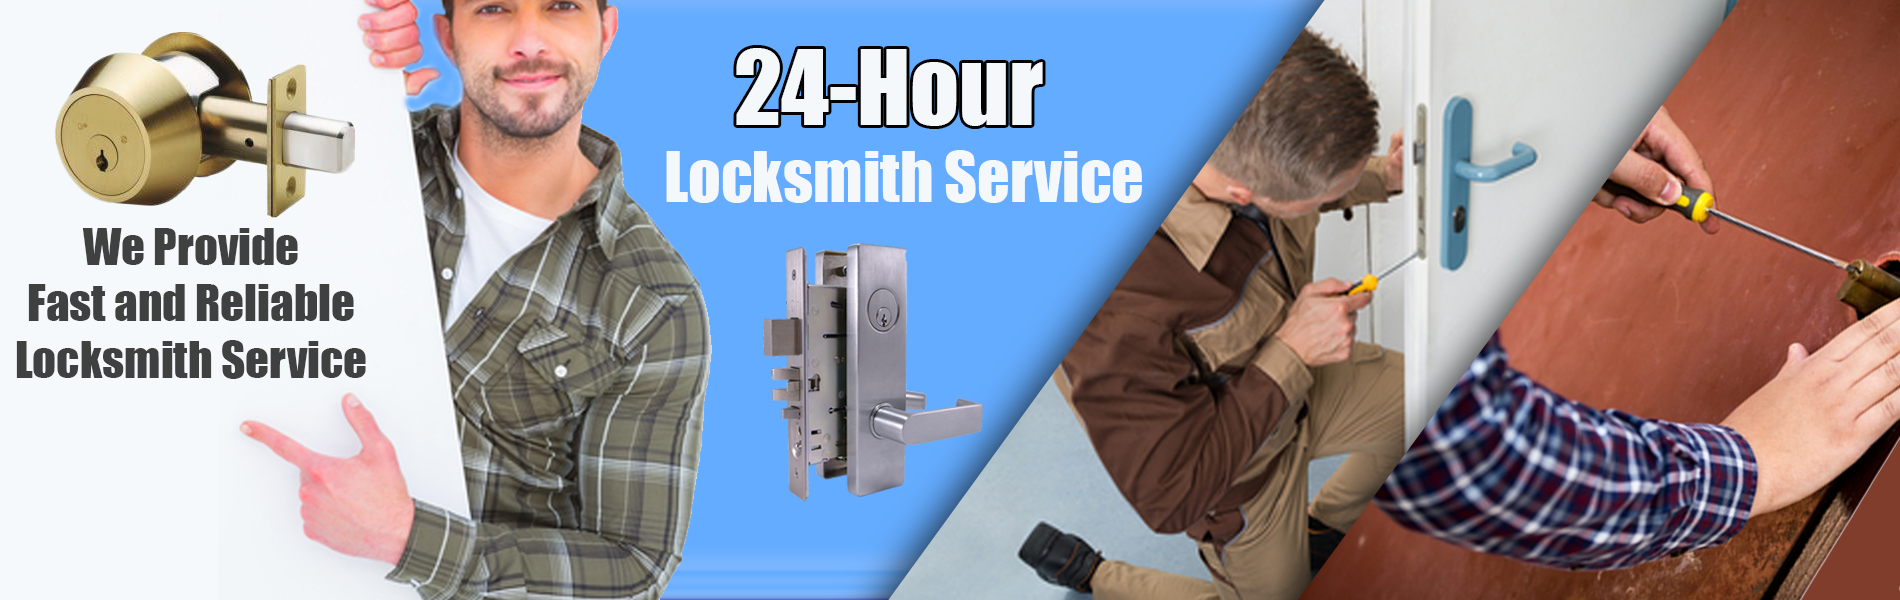 Washington Grove MD Locksmith Store Washington Grove, MD 301-244-4840